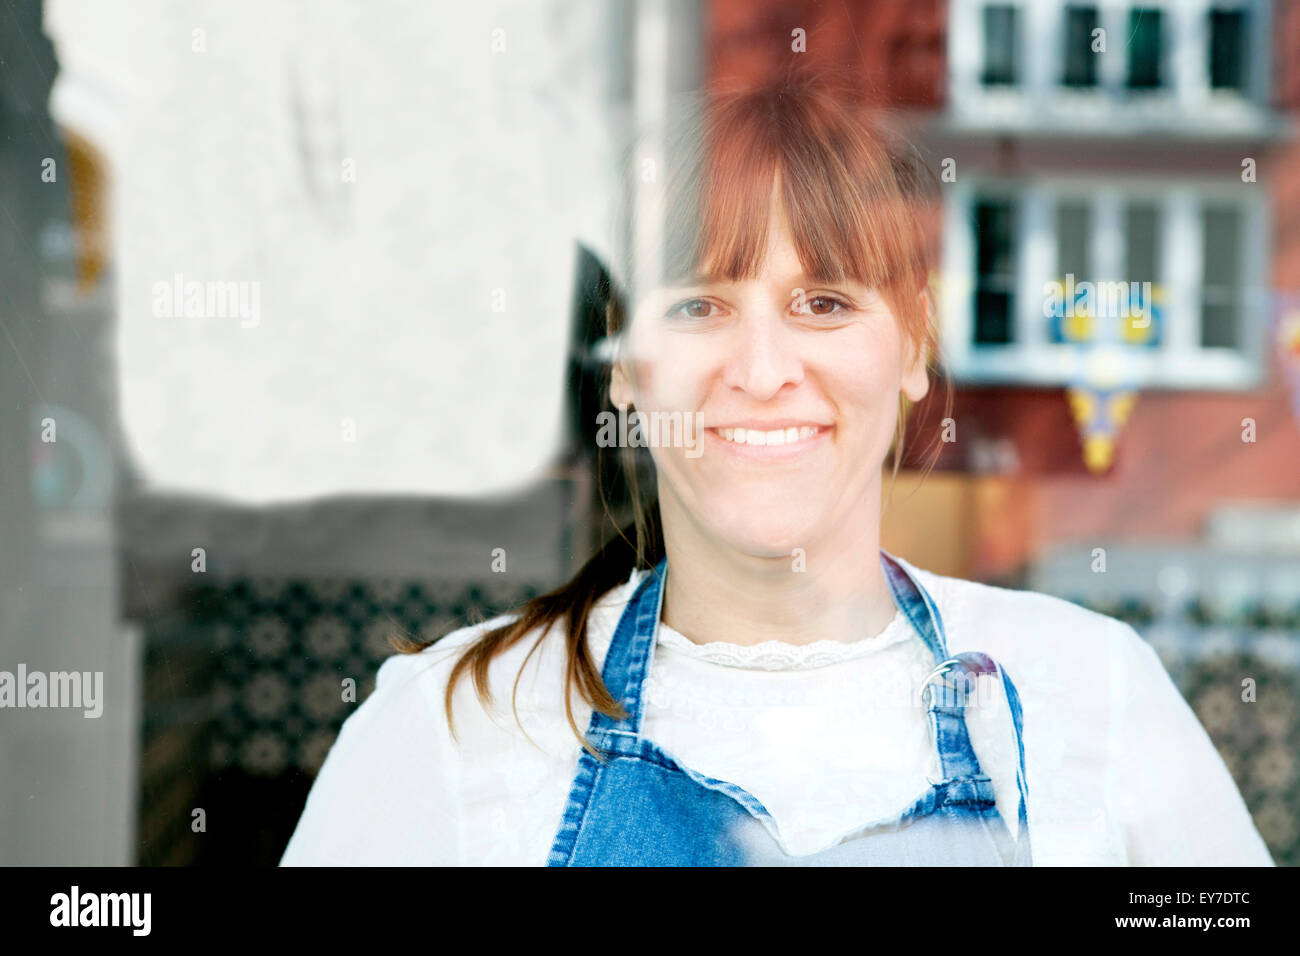 Female cafe owner, portrait - Stock Image